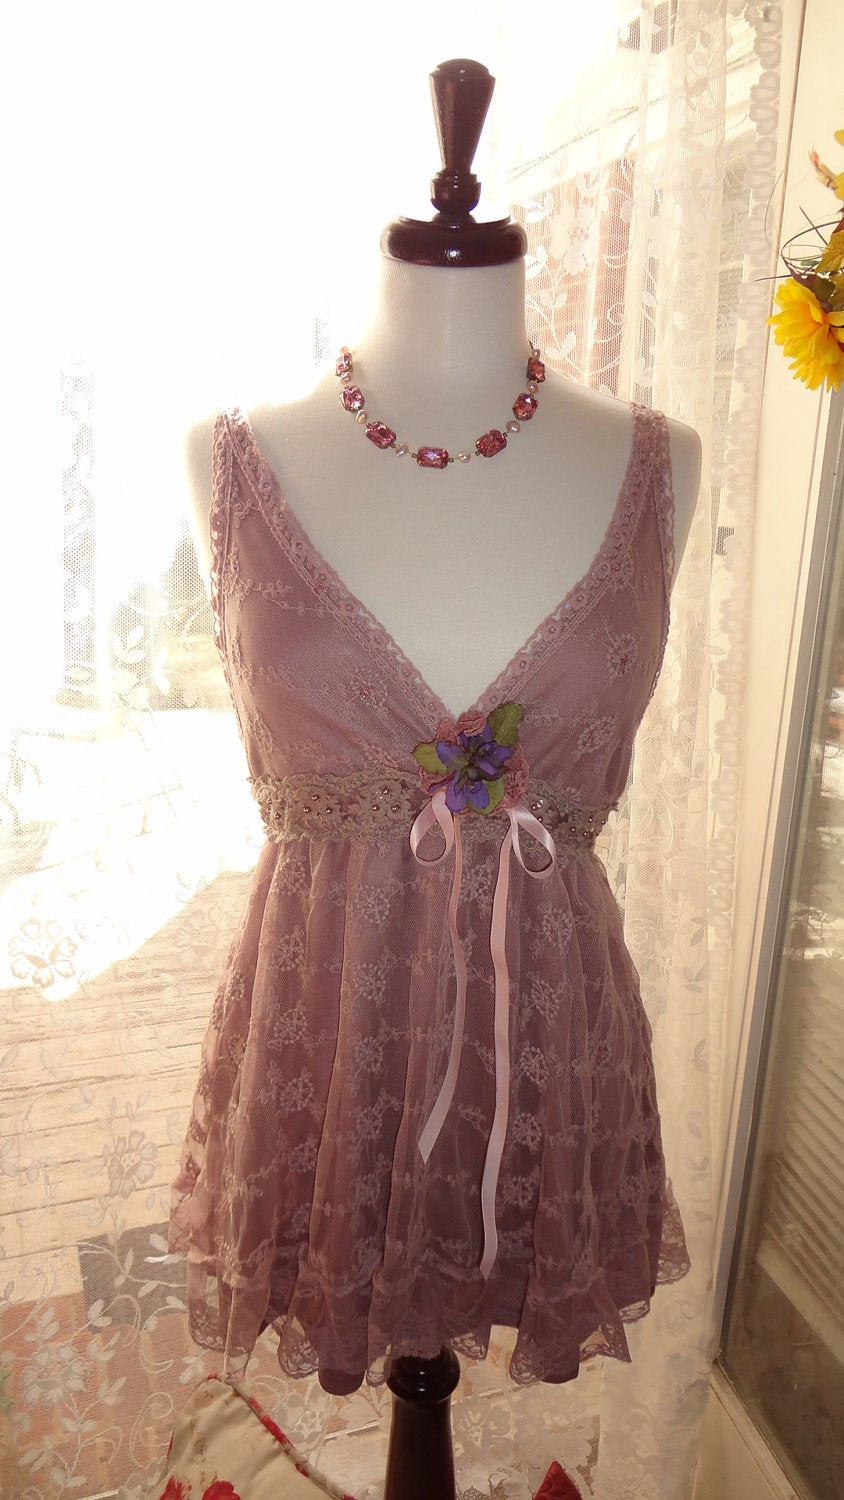 Best ideas about Shabby Chic Clothing . Save or Pin Gypsy Lace Top Boho Chic Mini Dress Romantic Shabby Chic Now.